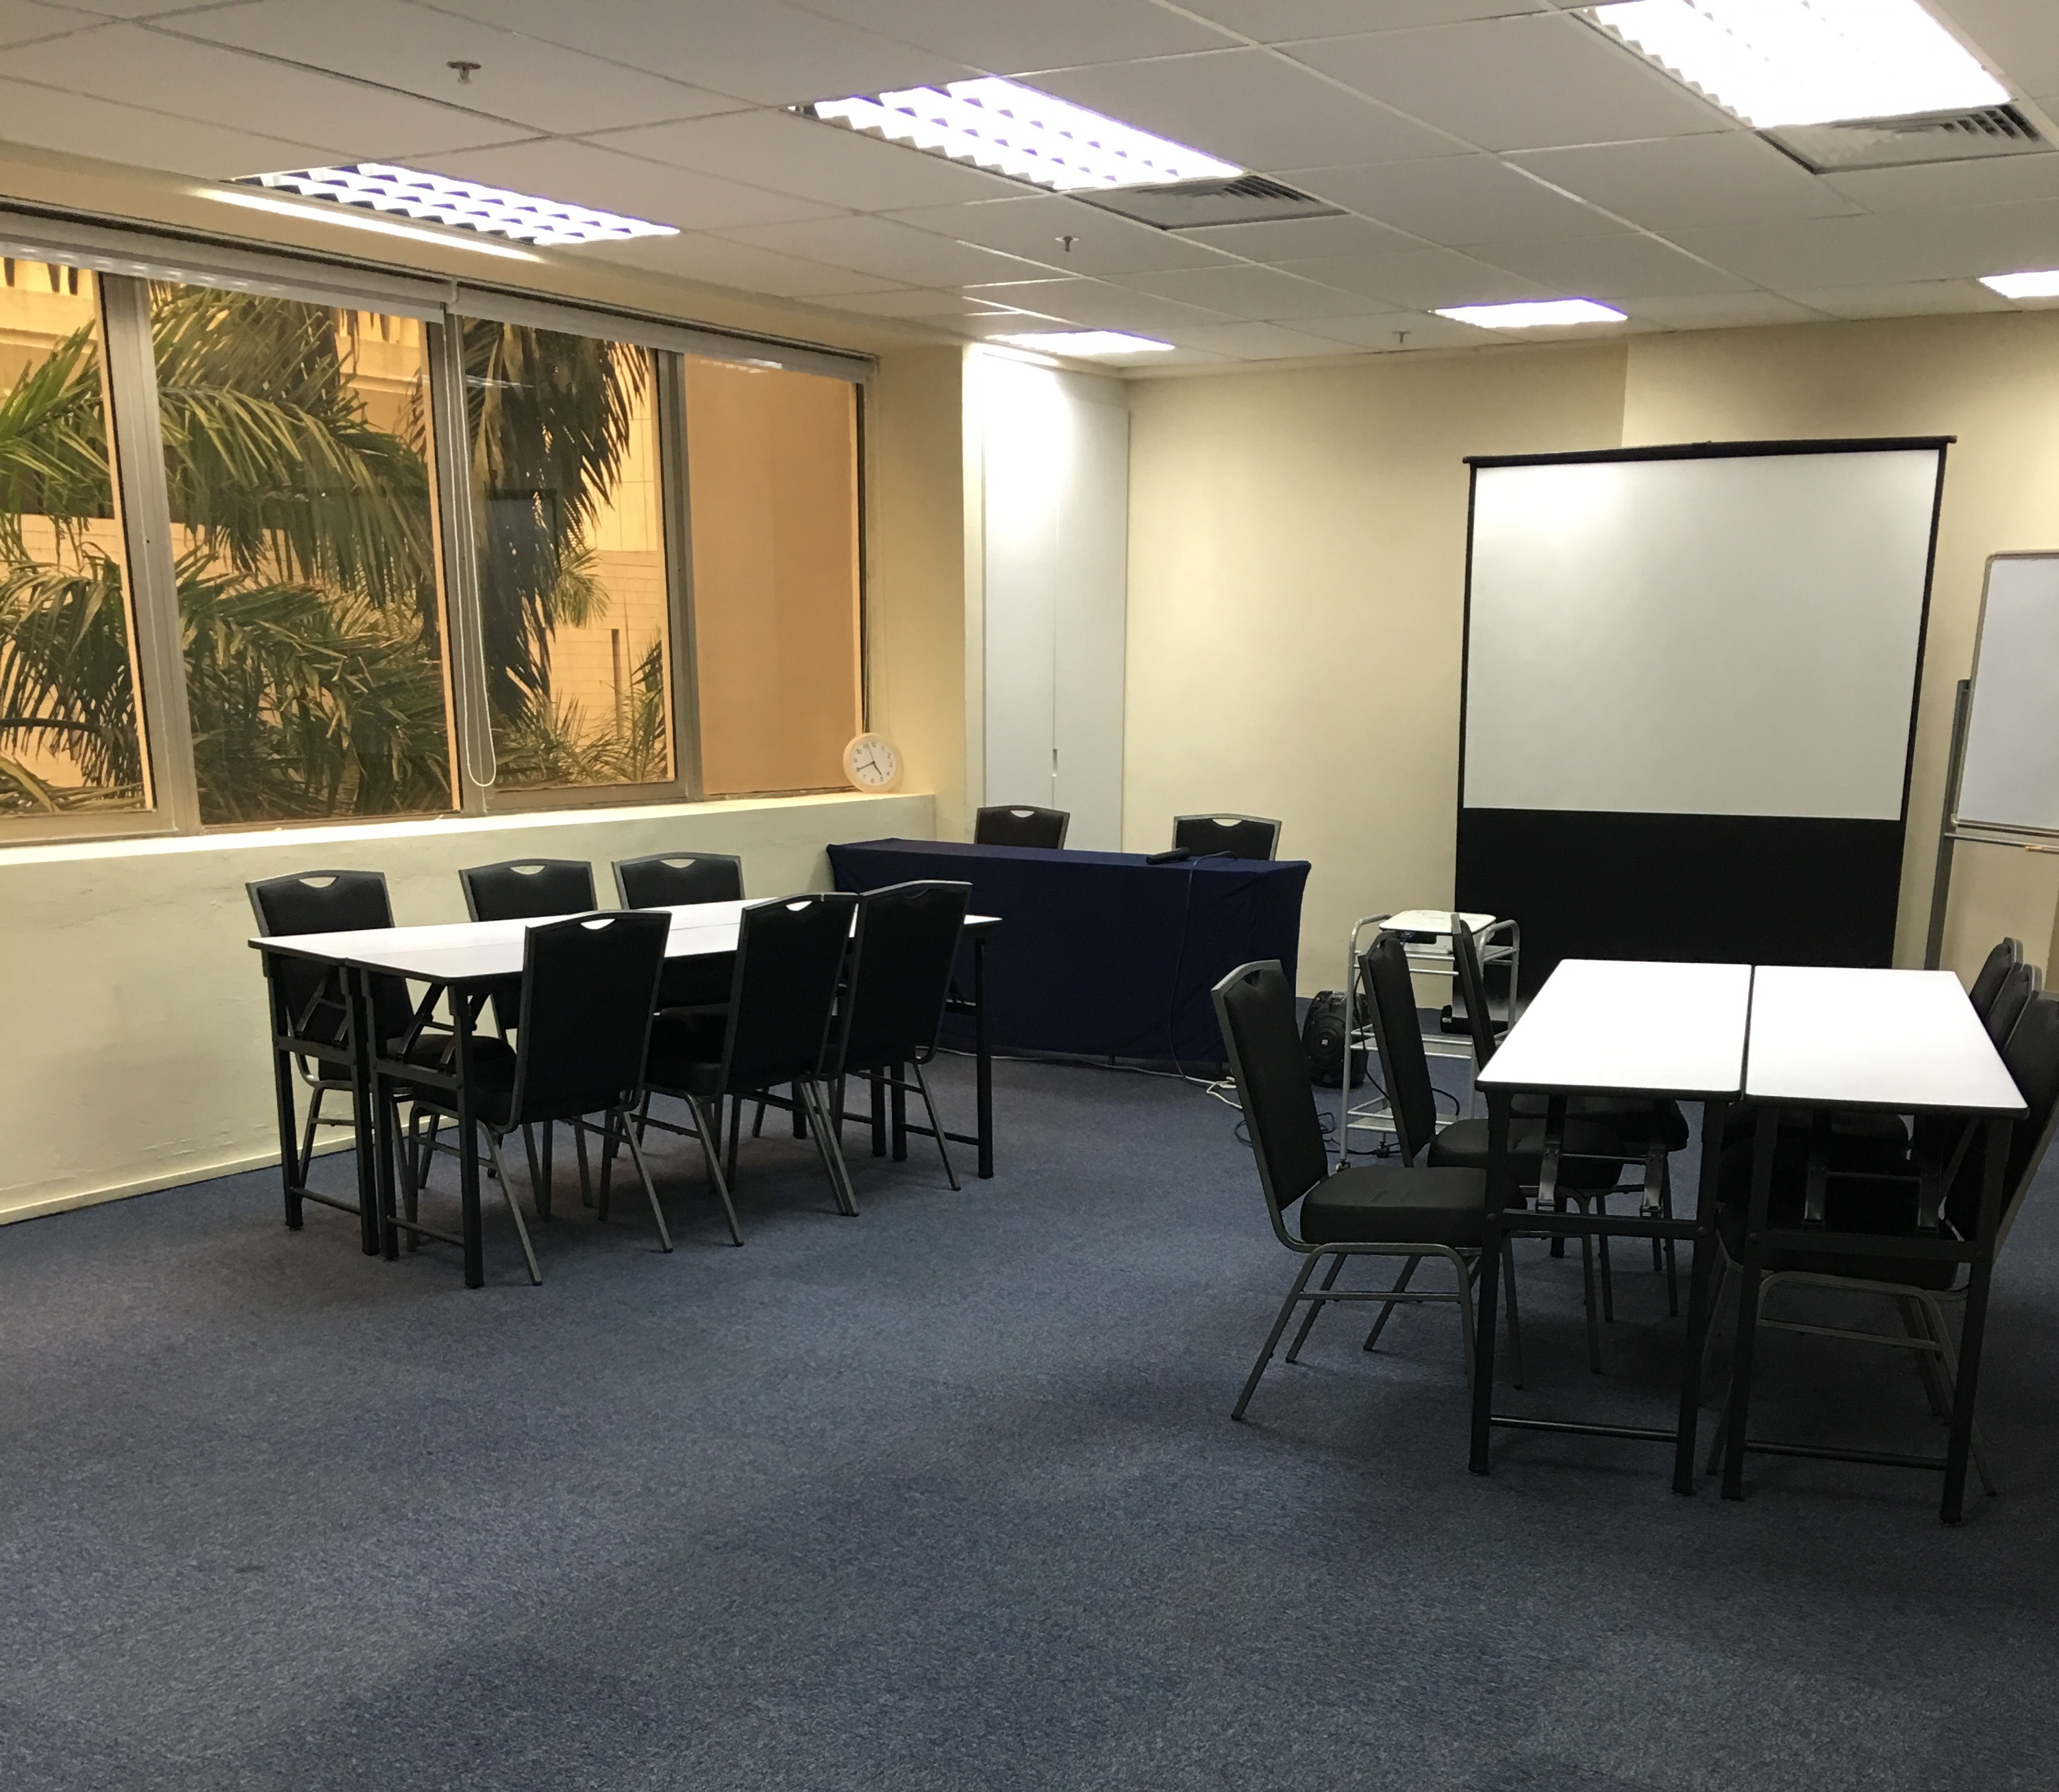 Meeting Room Rental In Singapore  Venuesquare Singapore. Boho Chic House Decor. Modern Bathroom Decor. Interior Decorating Ideas. Inexpensive Home Decor. Hobby Lobby Decorations. Best Dining Room Tables. Elegant Coastal Decor. Dining Room Sets Modern